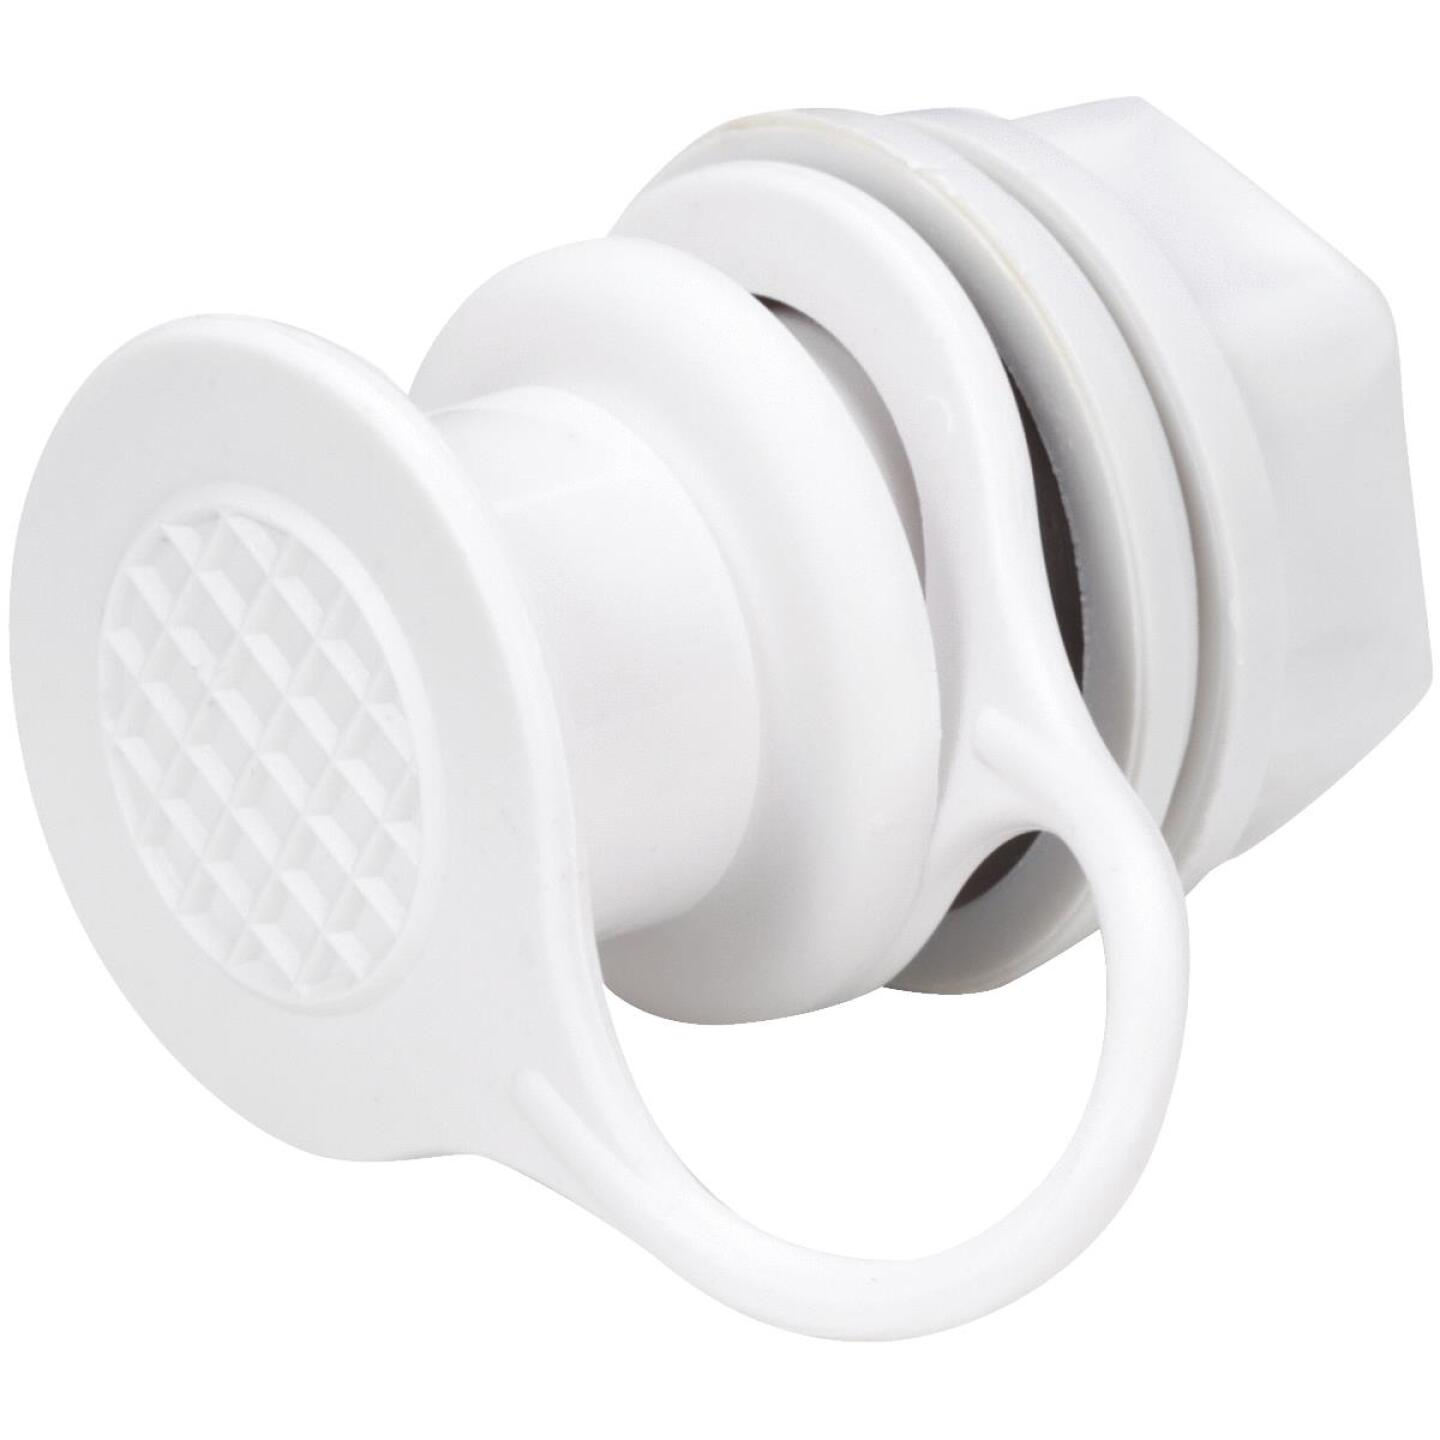 Igloo Triple Snap Push Cap Cooler Drain Plug Image 2